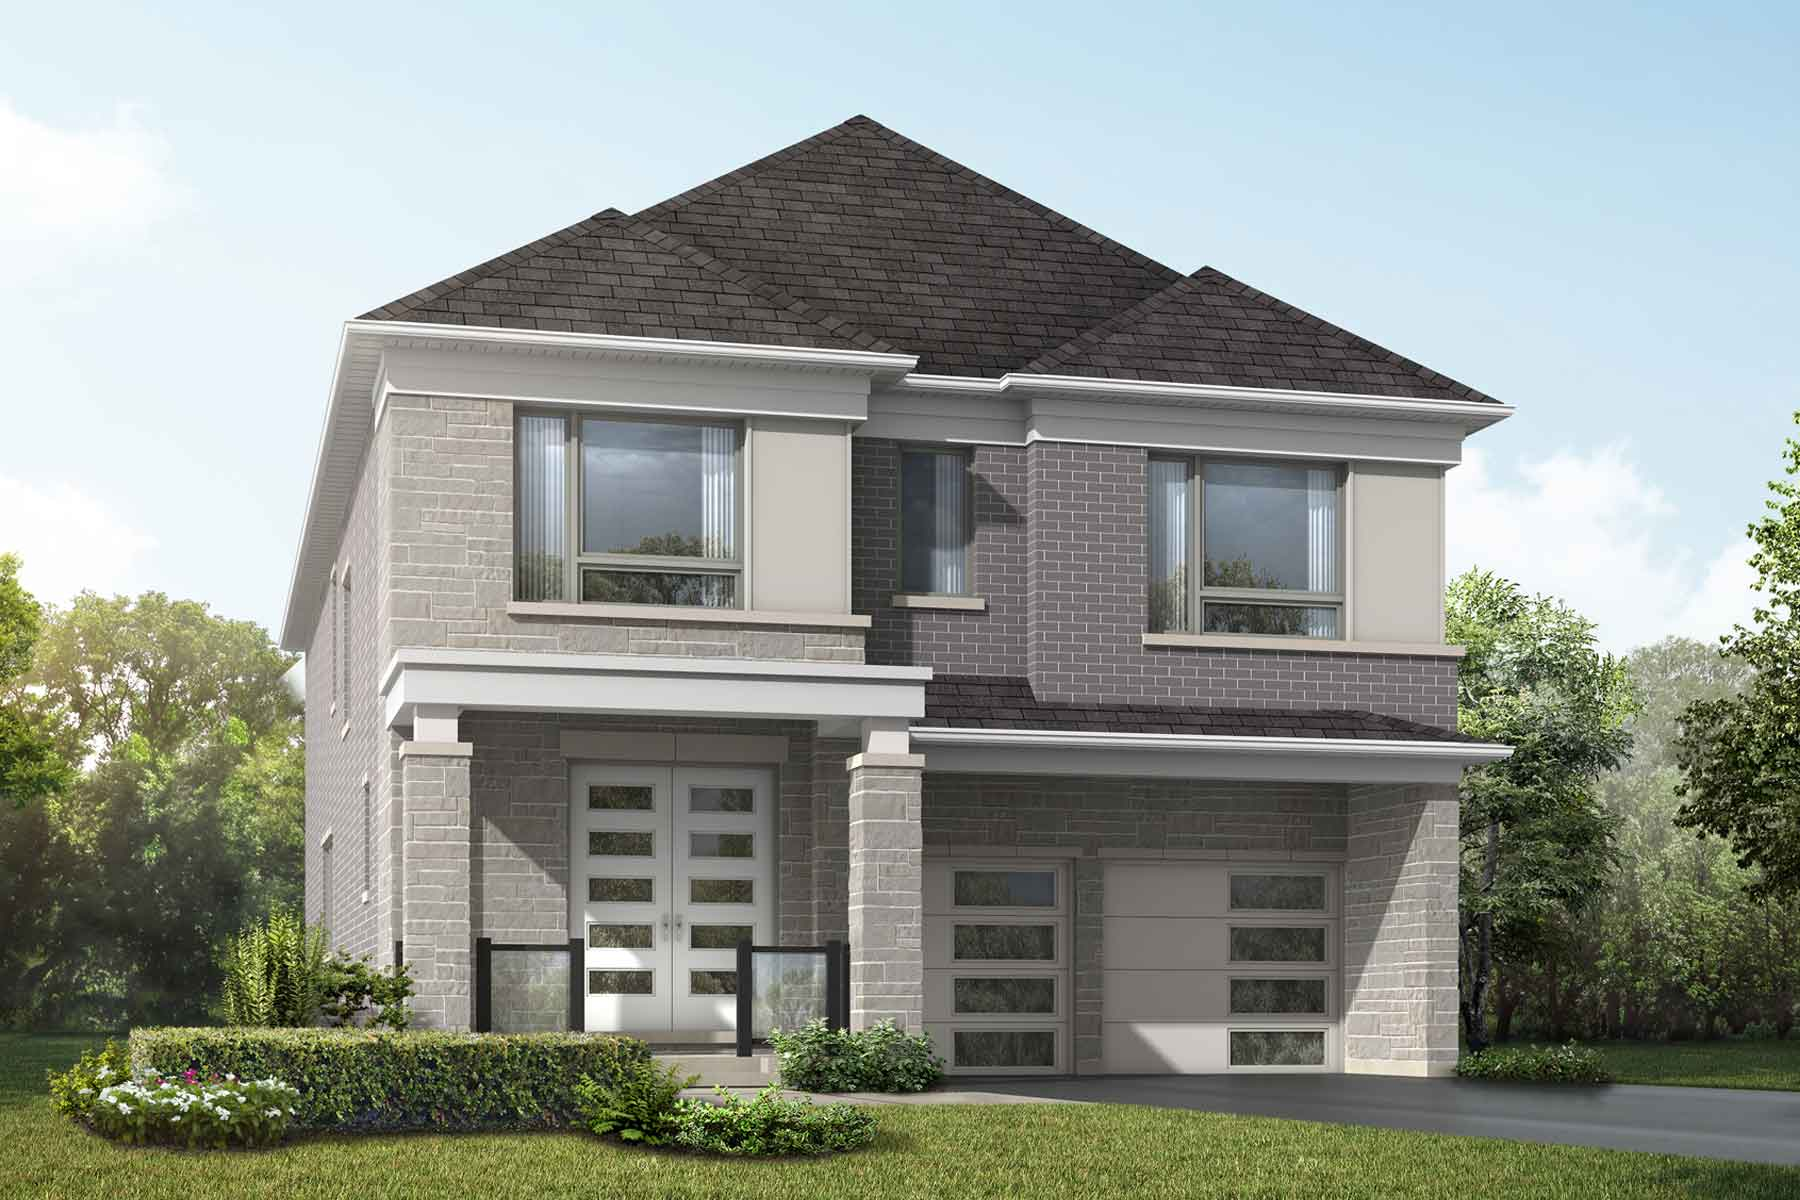 Violet Plan Elevation Front at Springwater in Markham Ontario by Mattamy Homes